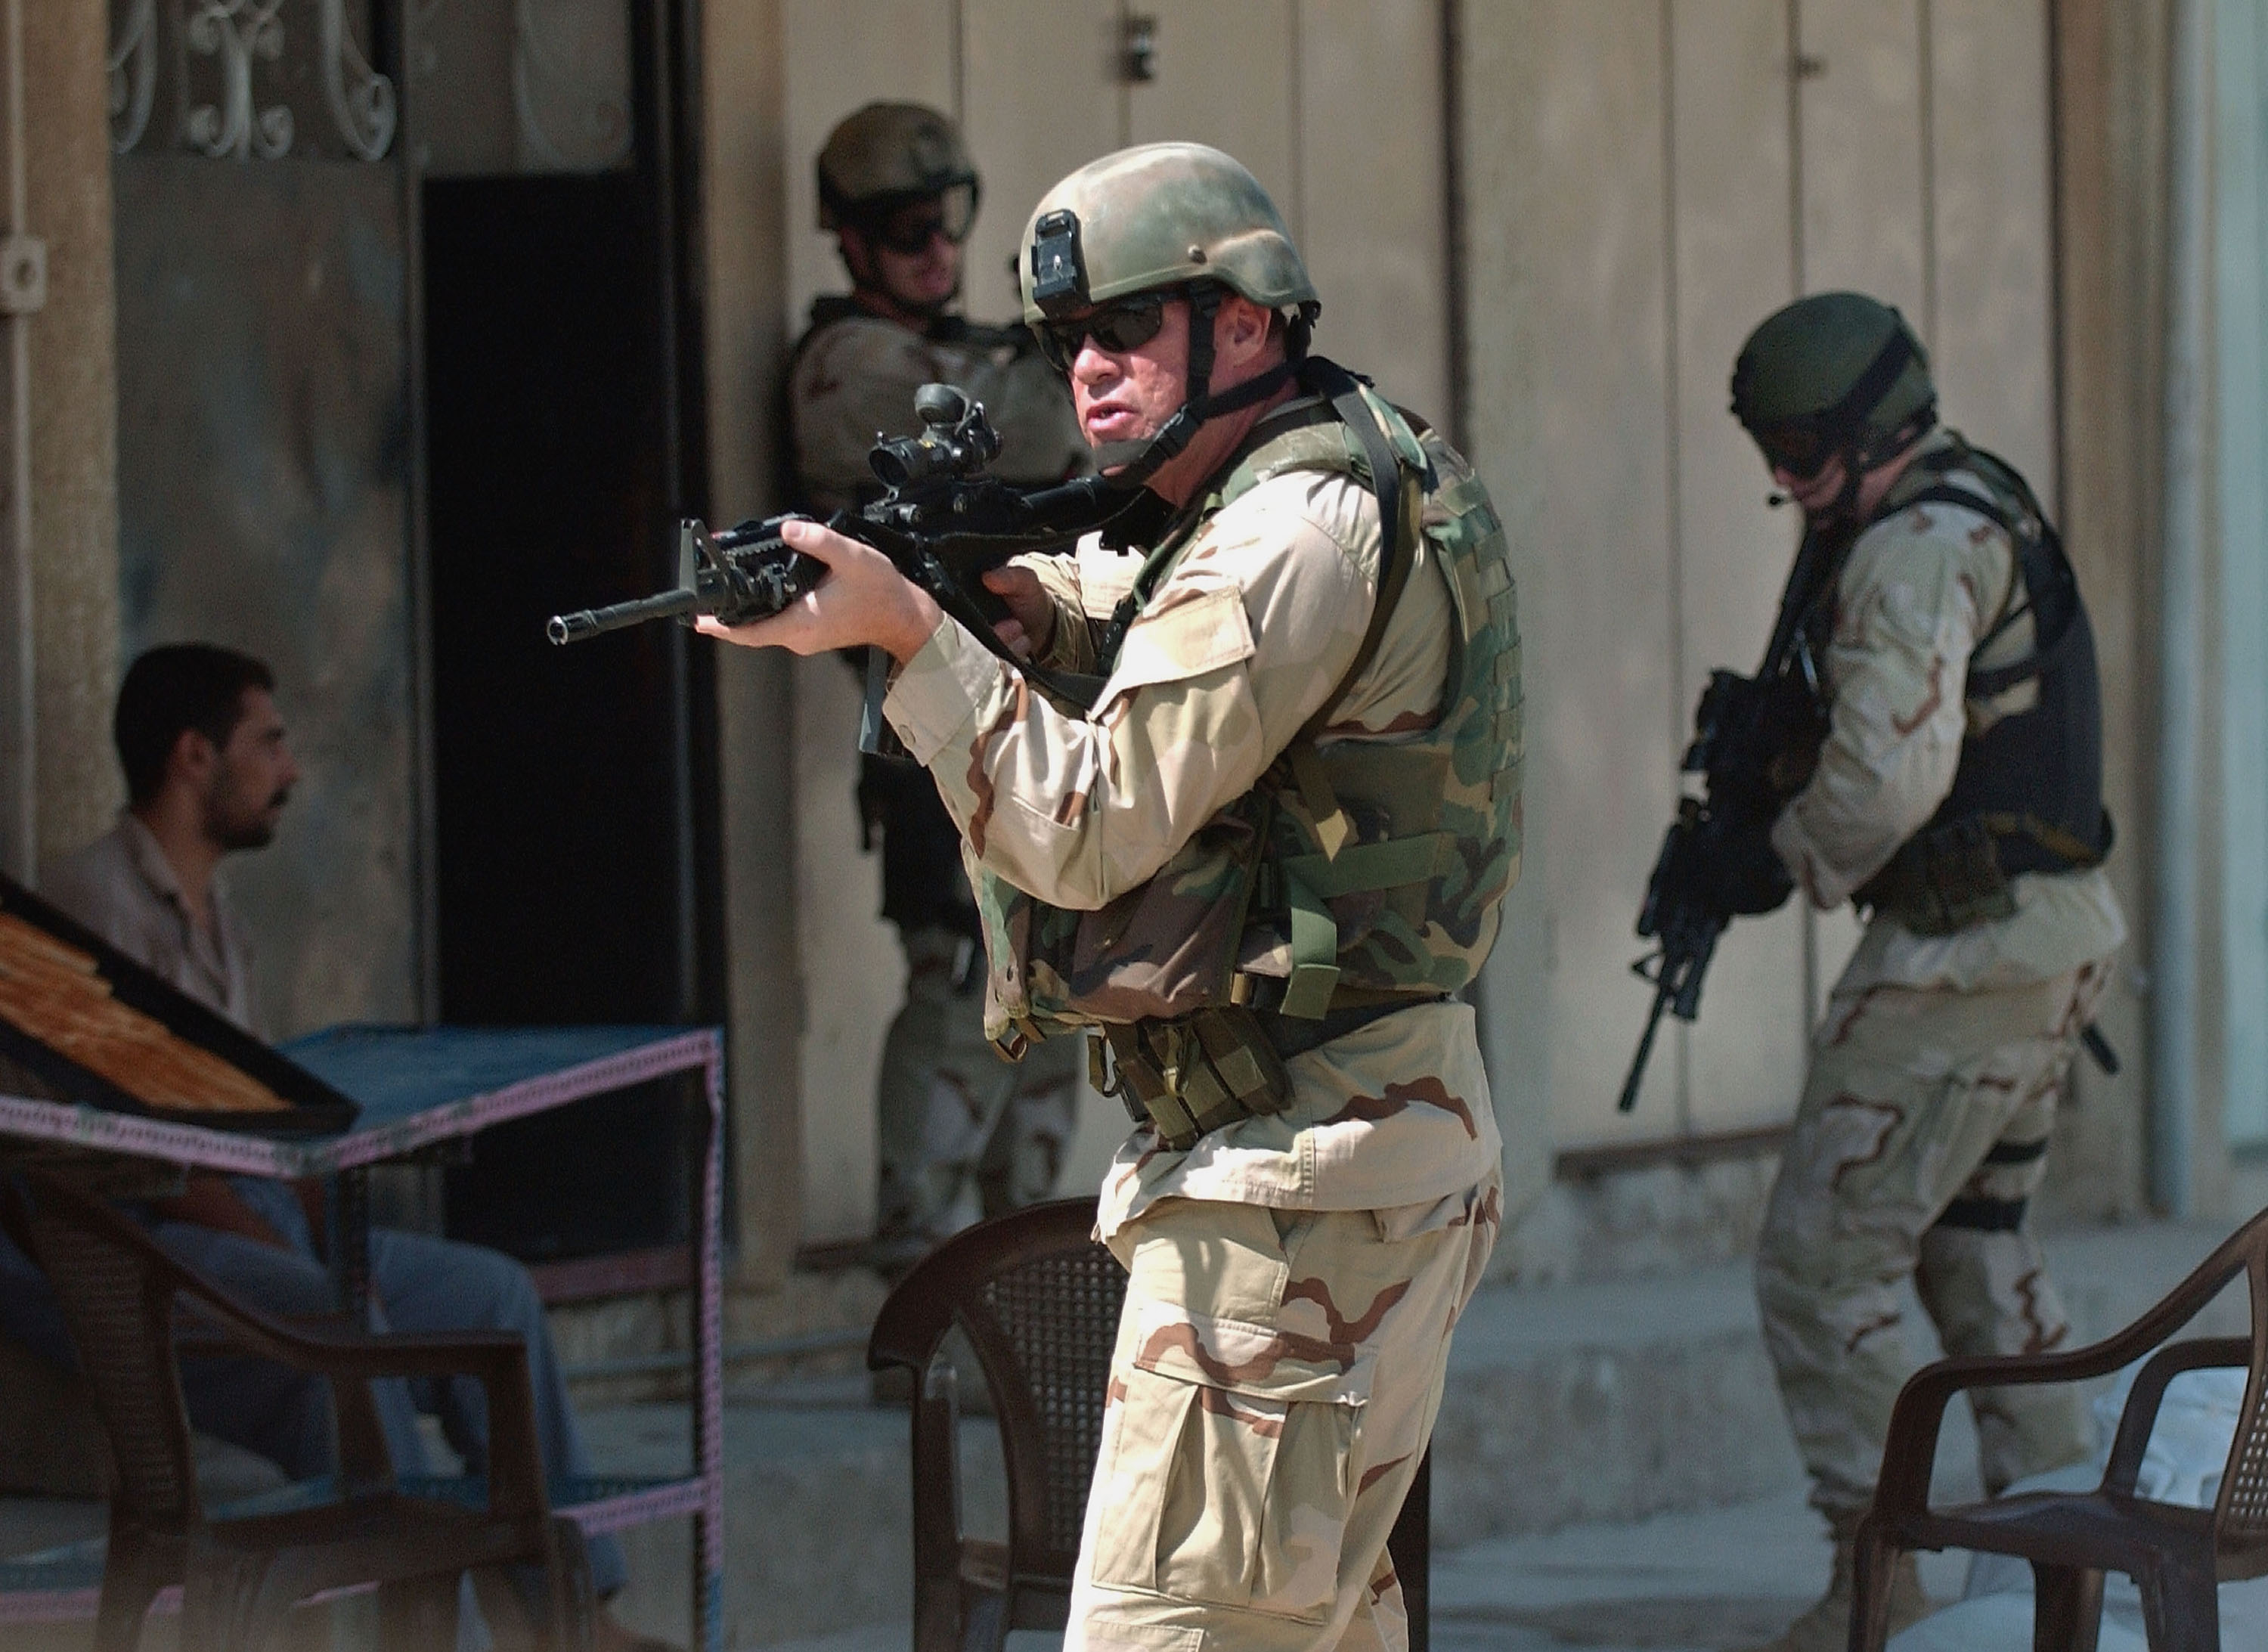 Can U S Special Forces Quot Help Stop The Bleeding Quot In Iraq